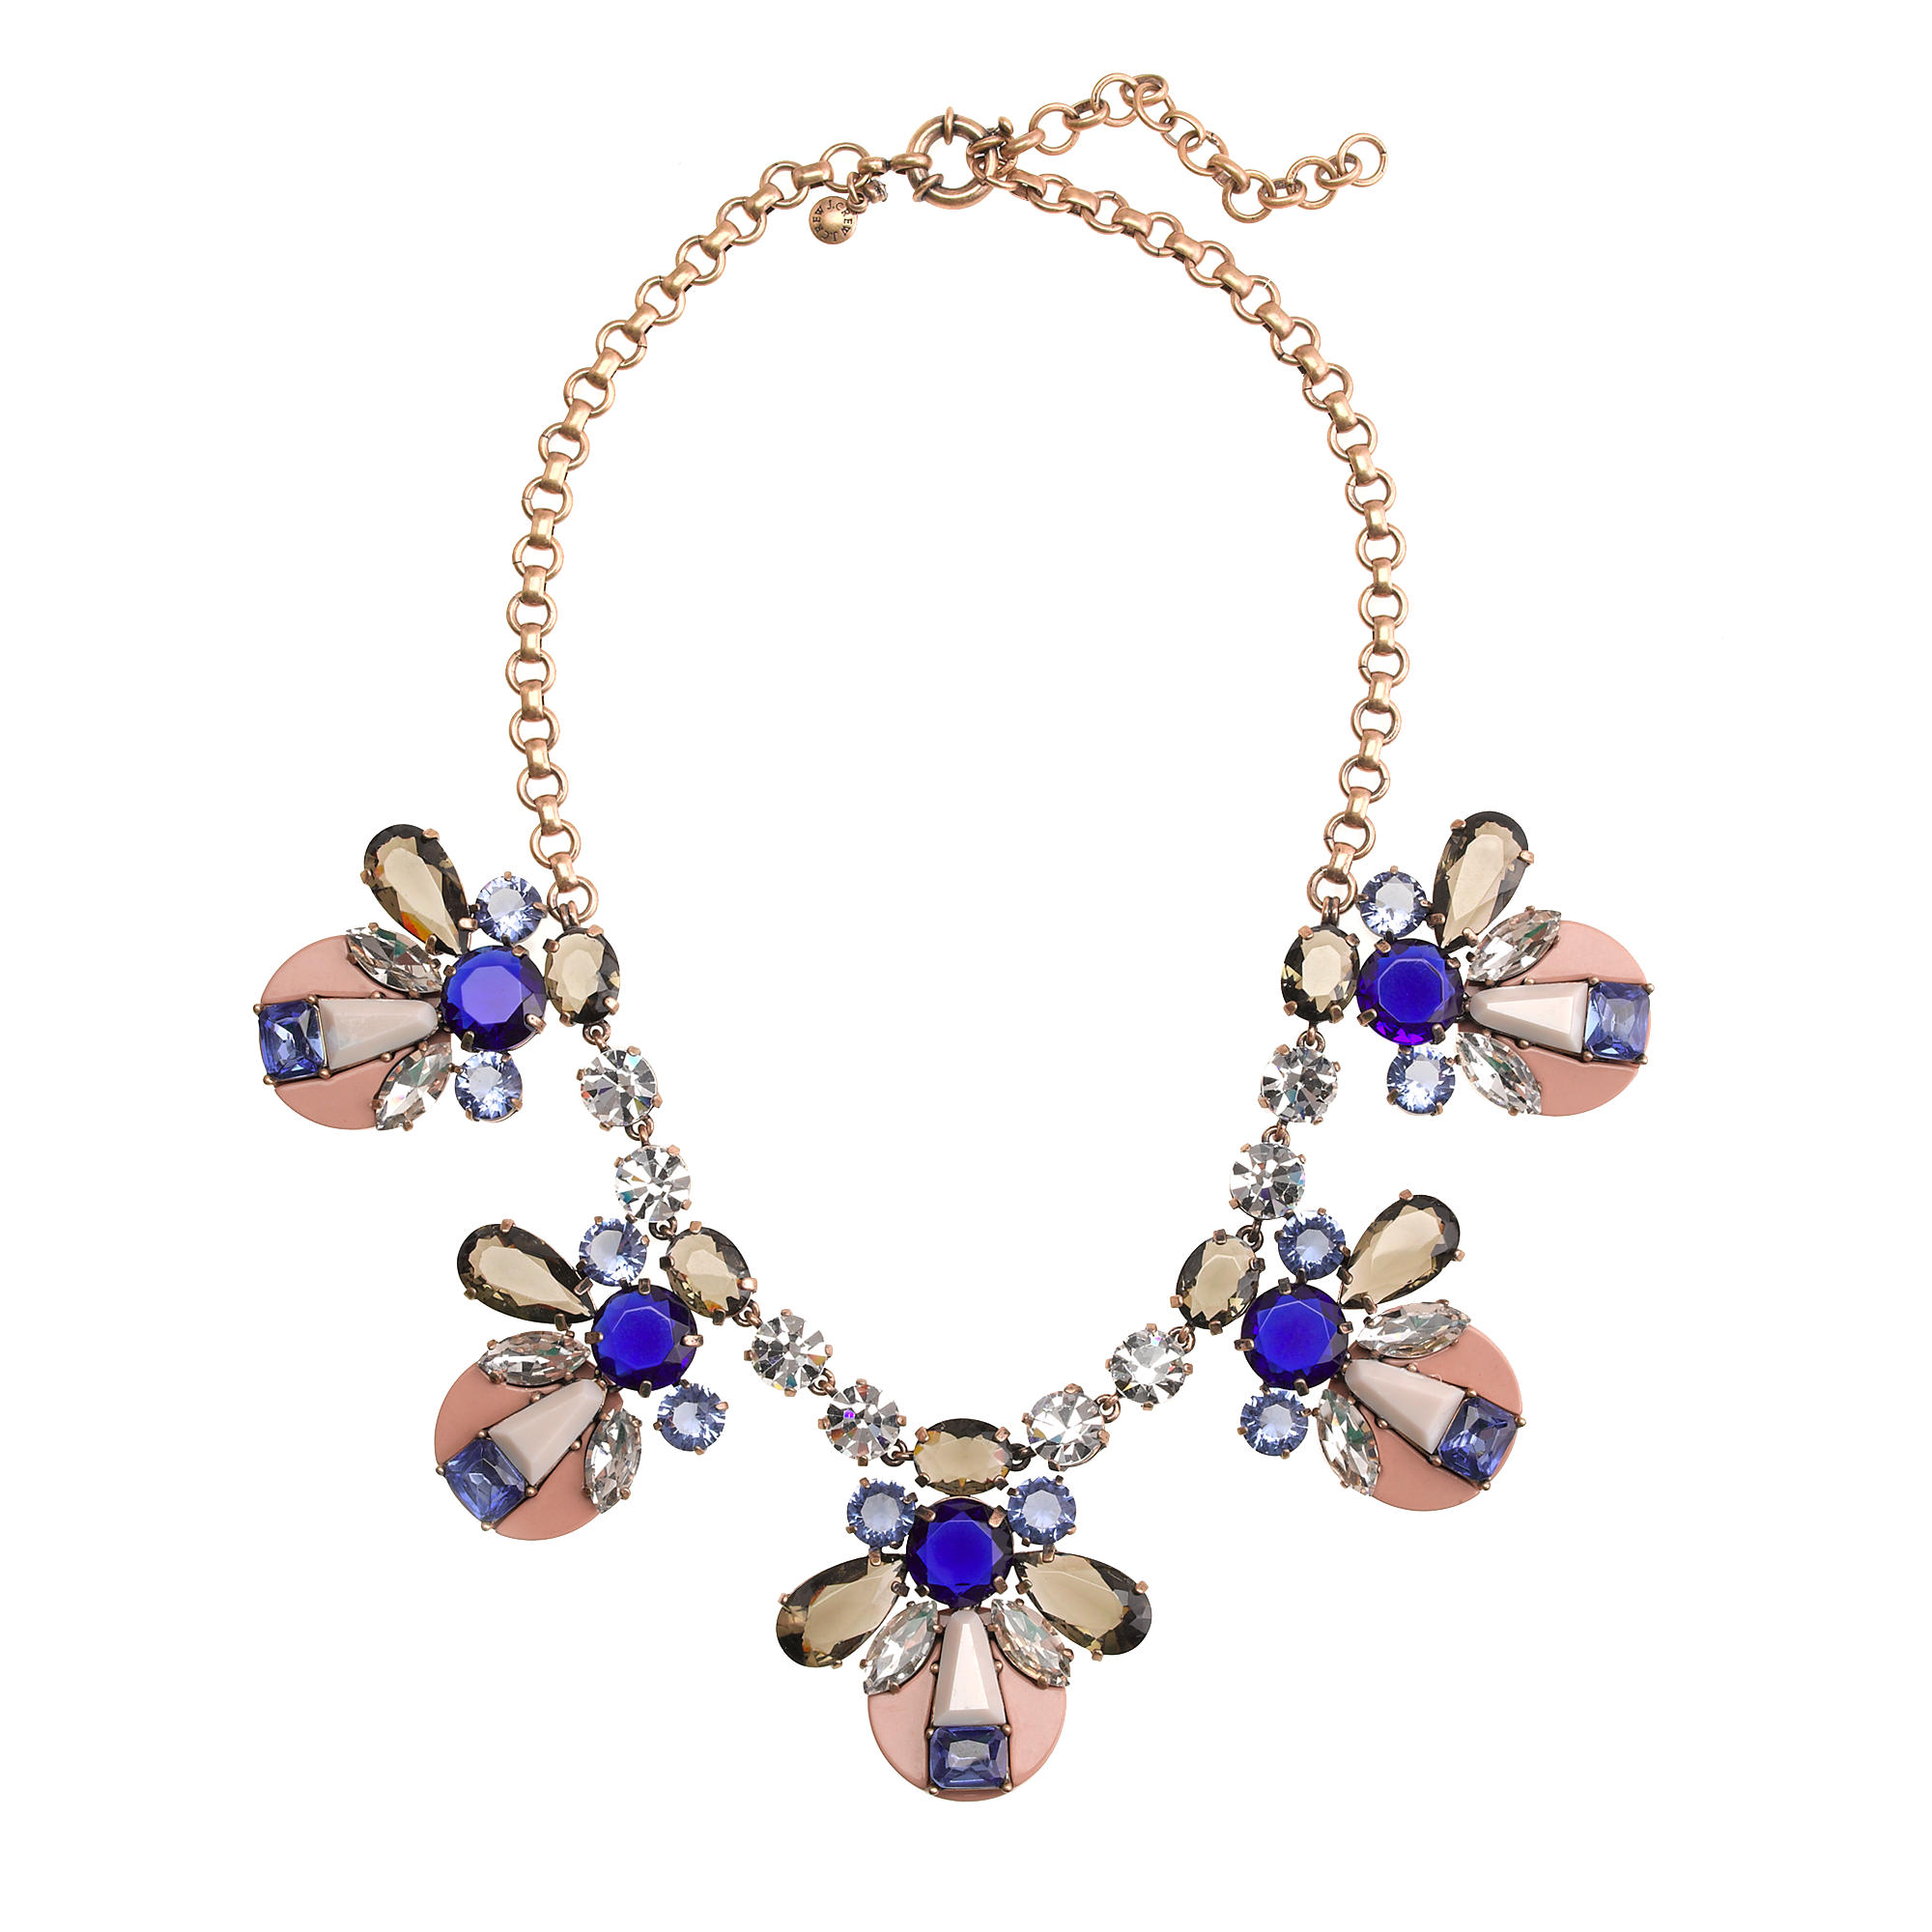 Mixed crystal and resin necklace j crew for J crew jewelry 2015